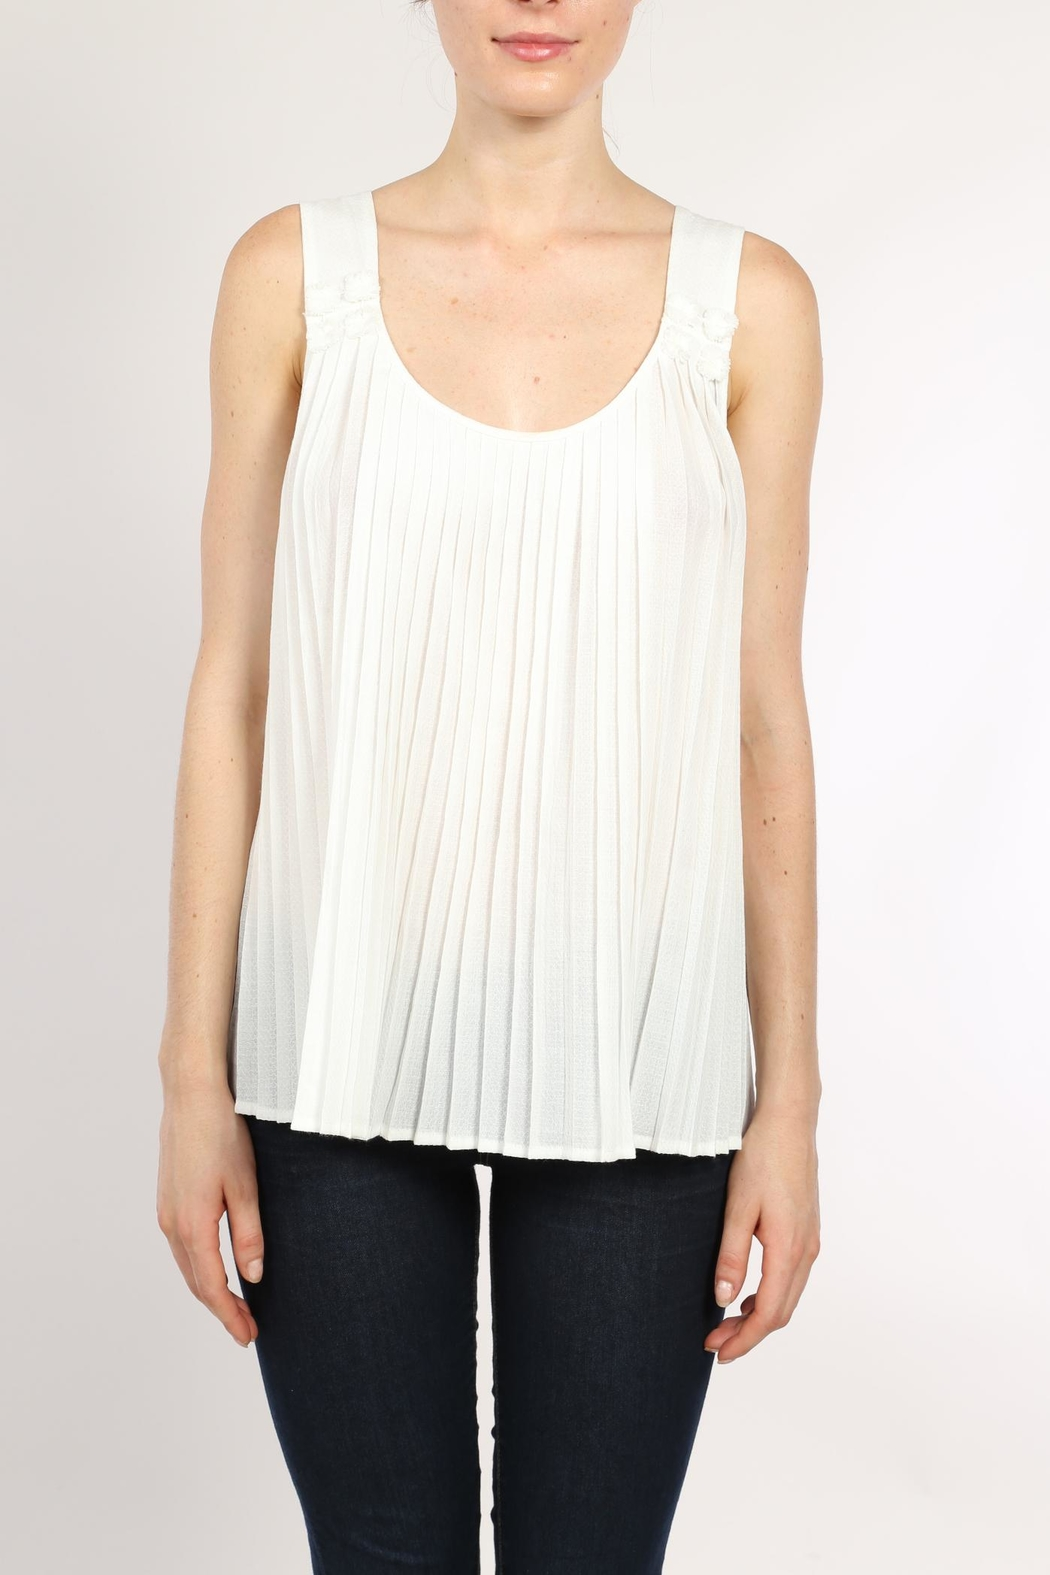 Movint White Pleated Top - Main Image